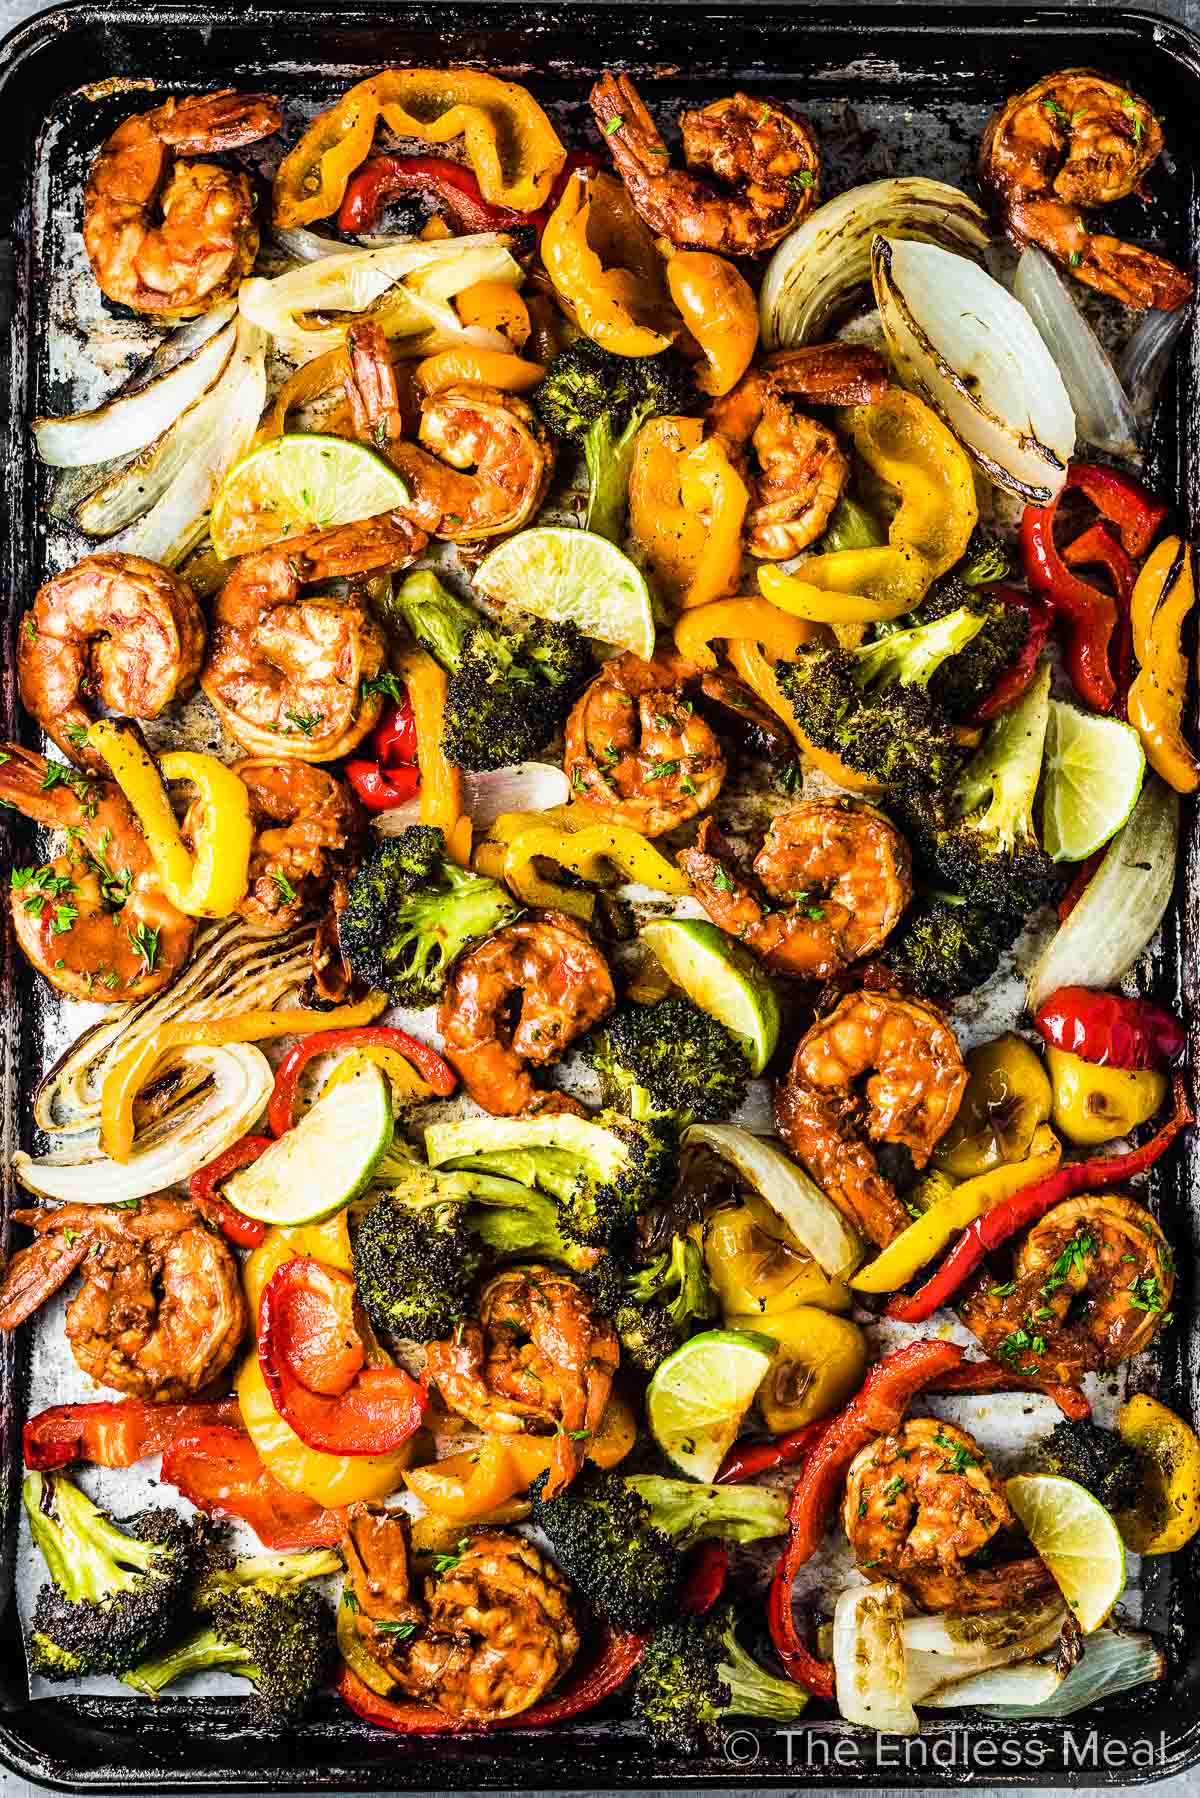 A baking sheet with lots of roasted veggies and some chili lime shrimp.